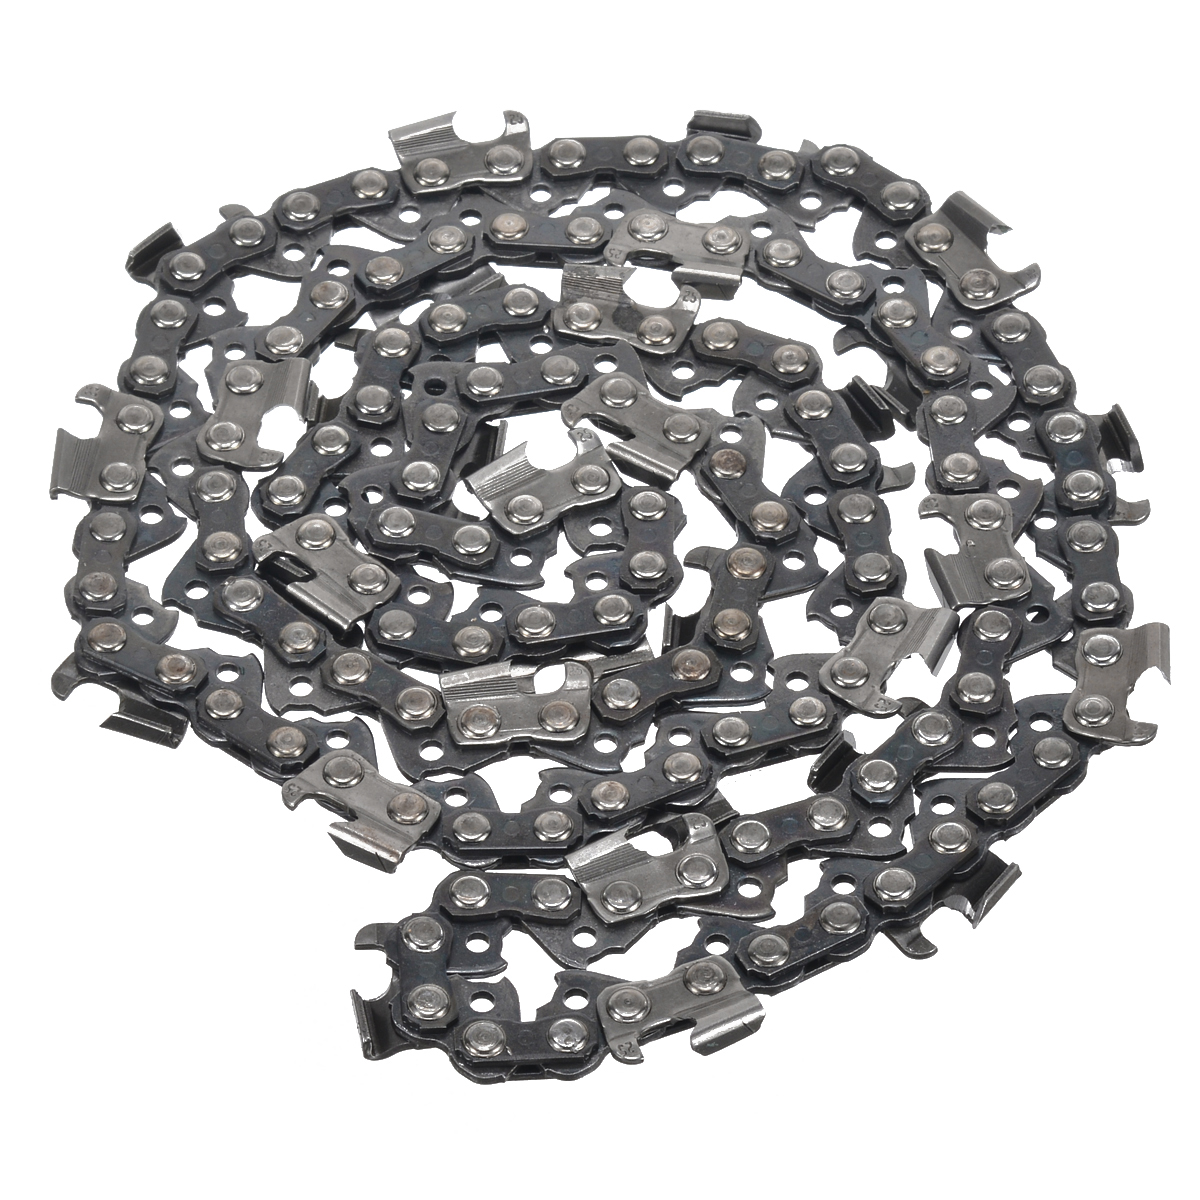 16'' Chainsaw Chain 325 Chainsaw Saw Chain With 64 Section Drive Links for Woodworking Garden Chain saw Chain Parts(China)